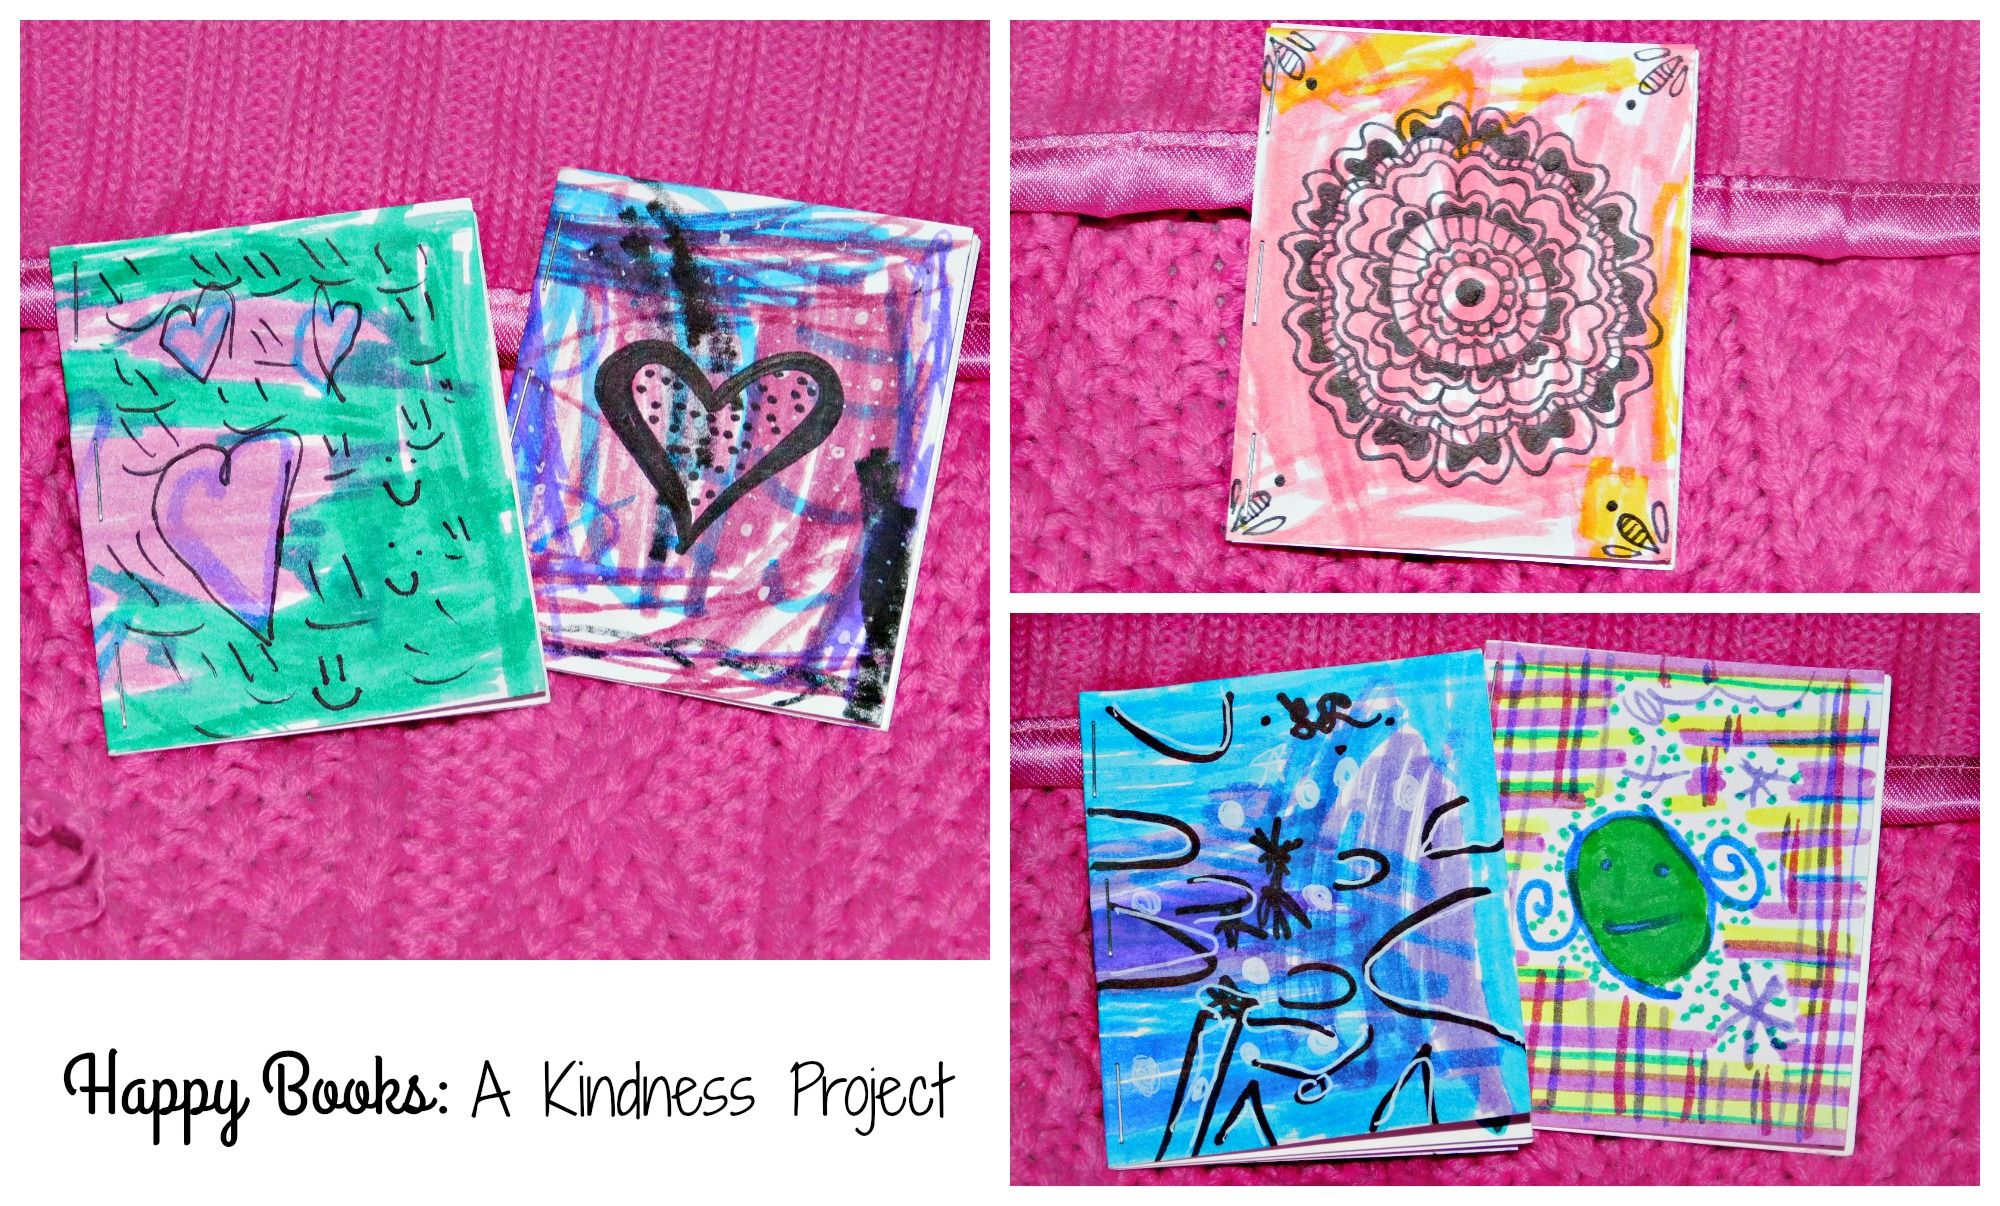 Happy Books: A Kindness Project was started in December 2014 by my family. We decided to make tiny inspirational quote books to brighten other's days! We leave them all sorts of places in our community for other people to find! We trust that they always find exactly who needs the positive message! Join our project at facebook.com/groups/peacelovepositivity